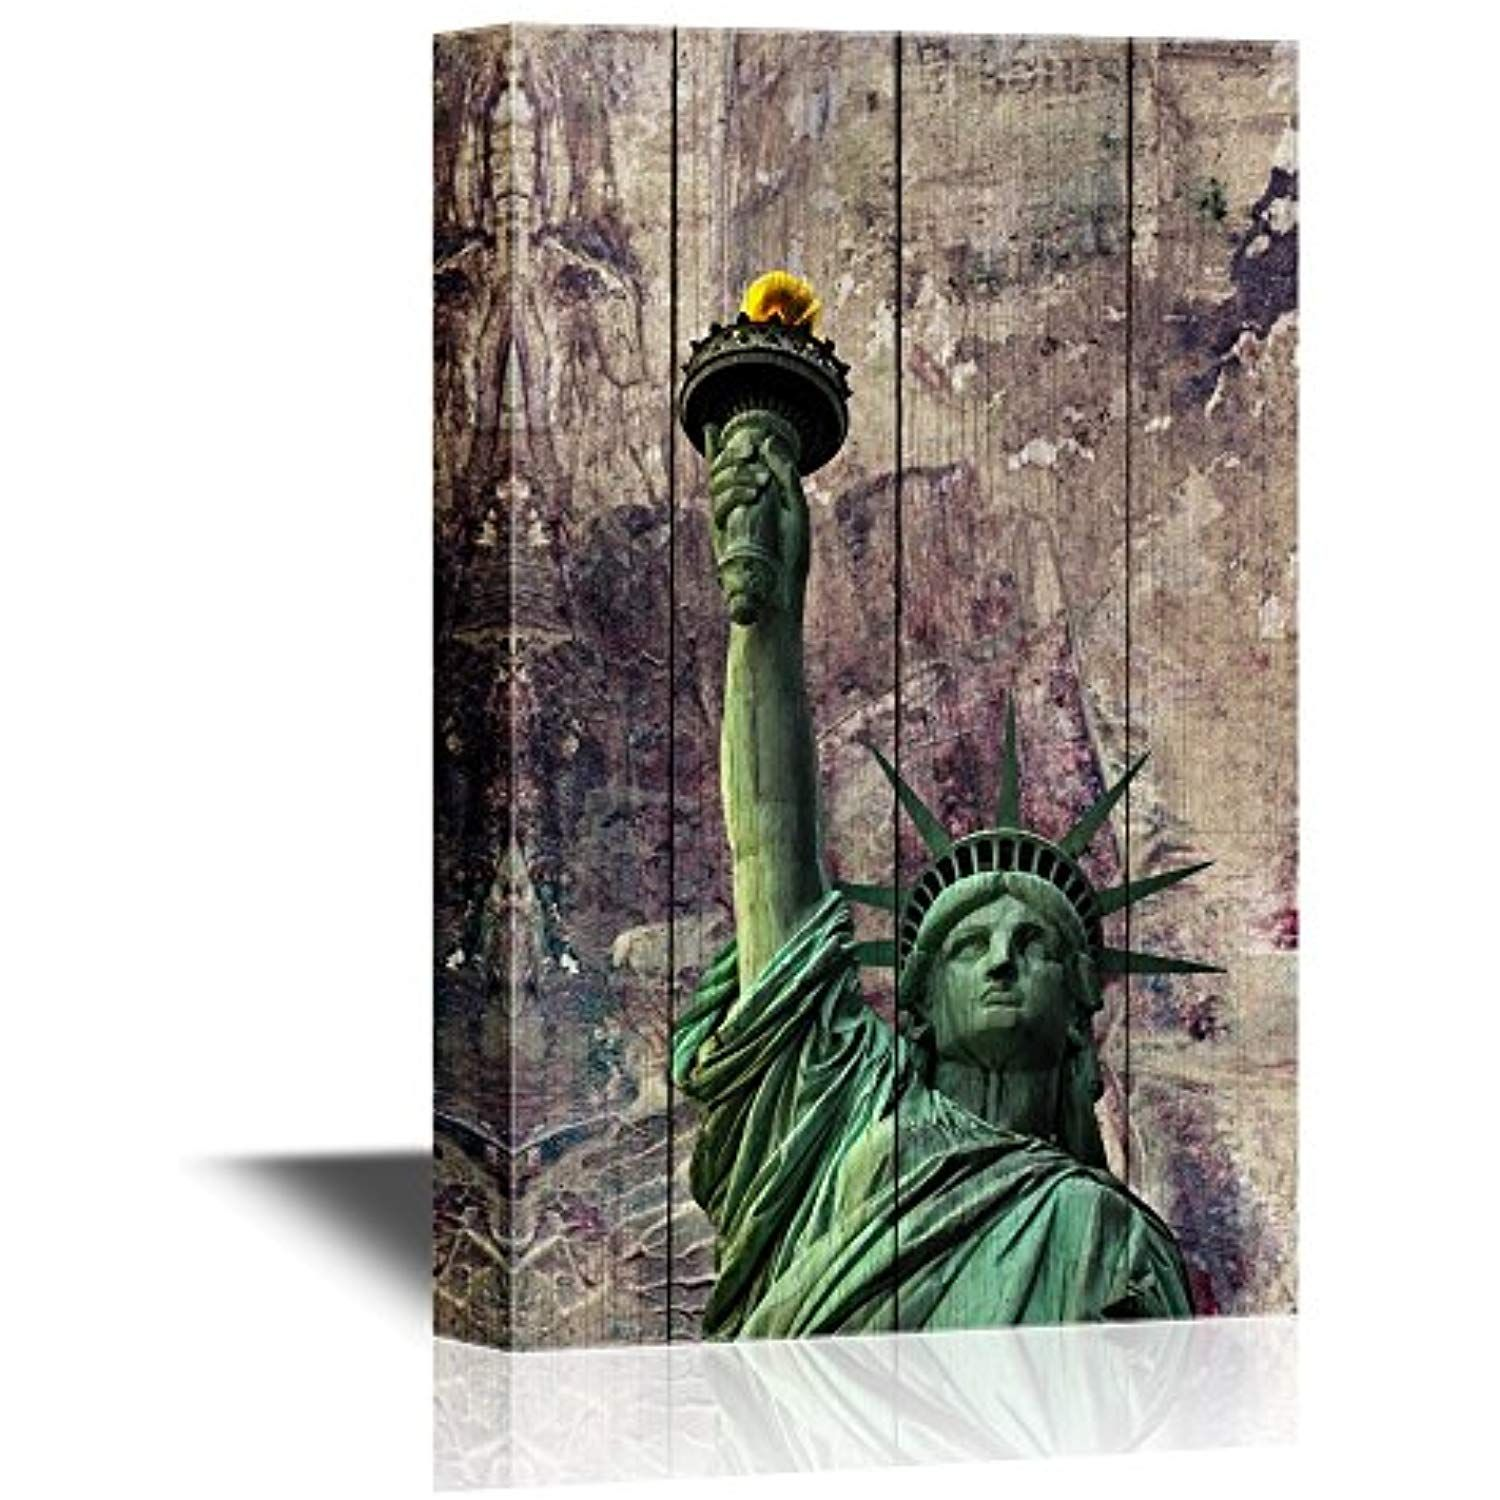 Wall26 Canvas Wall Art Statue Of Liberty On Wood Background Gallery Wrap Modern Home Decor Ready To Hang 12x18 Inches Y Wall Art Canvas Wall Art Art